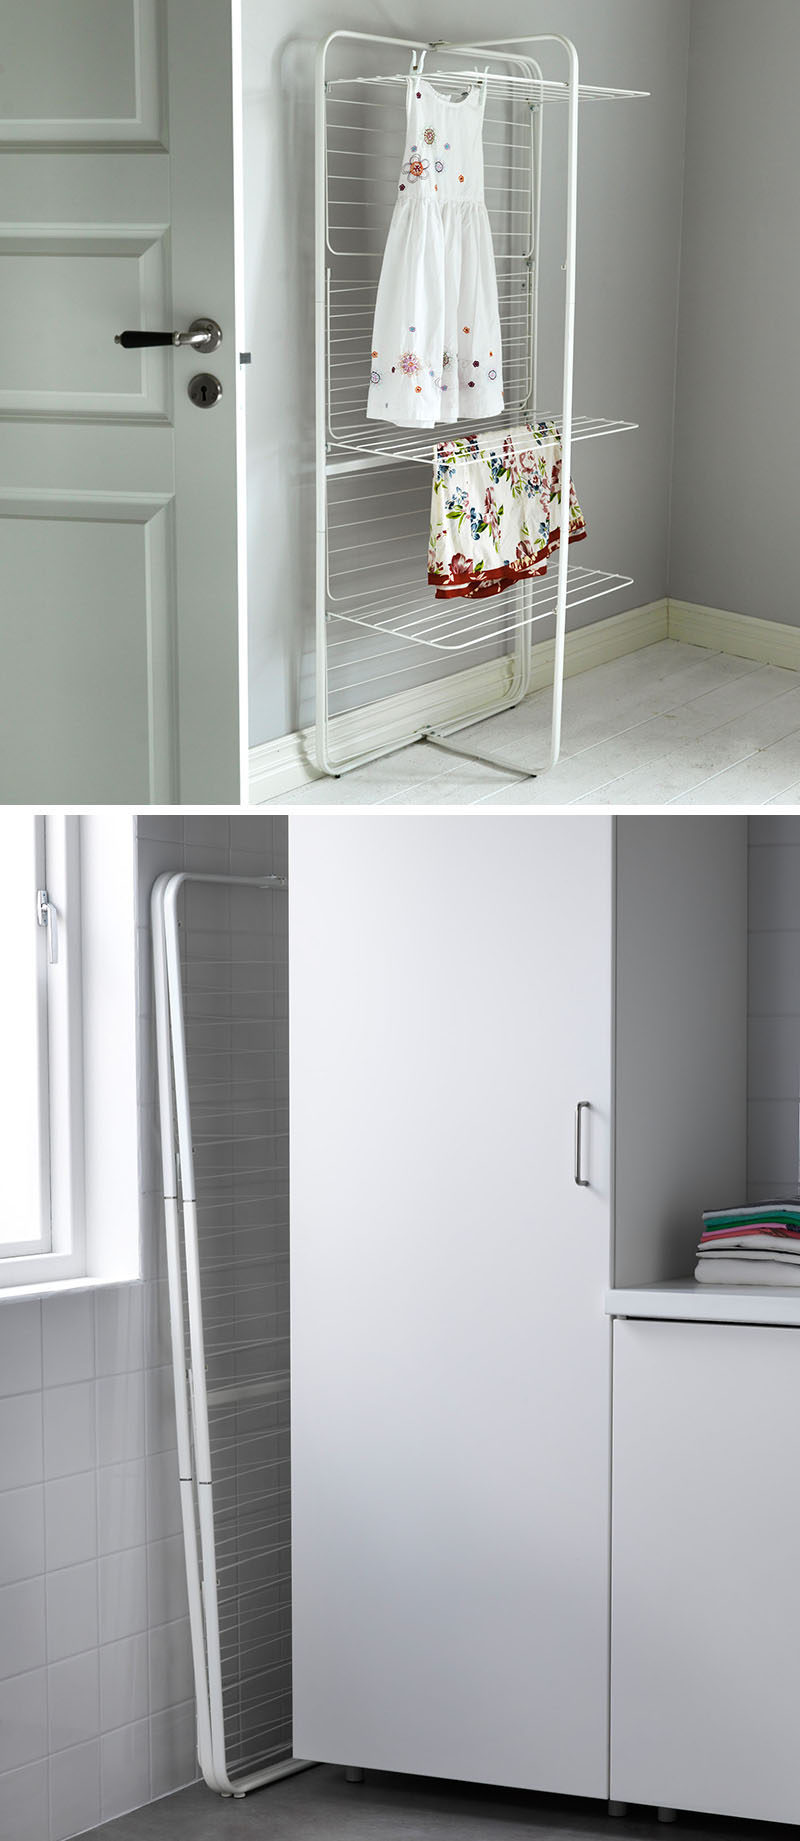 7 Ideas For Making Your Laundry Room More Organized // Having a foldable drying rack makes it easy to dry delicate items, and when not in use, it can be neatly tucked away.